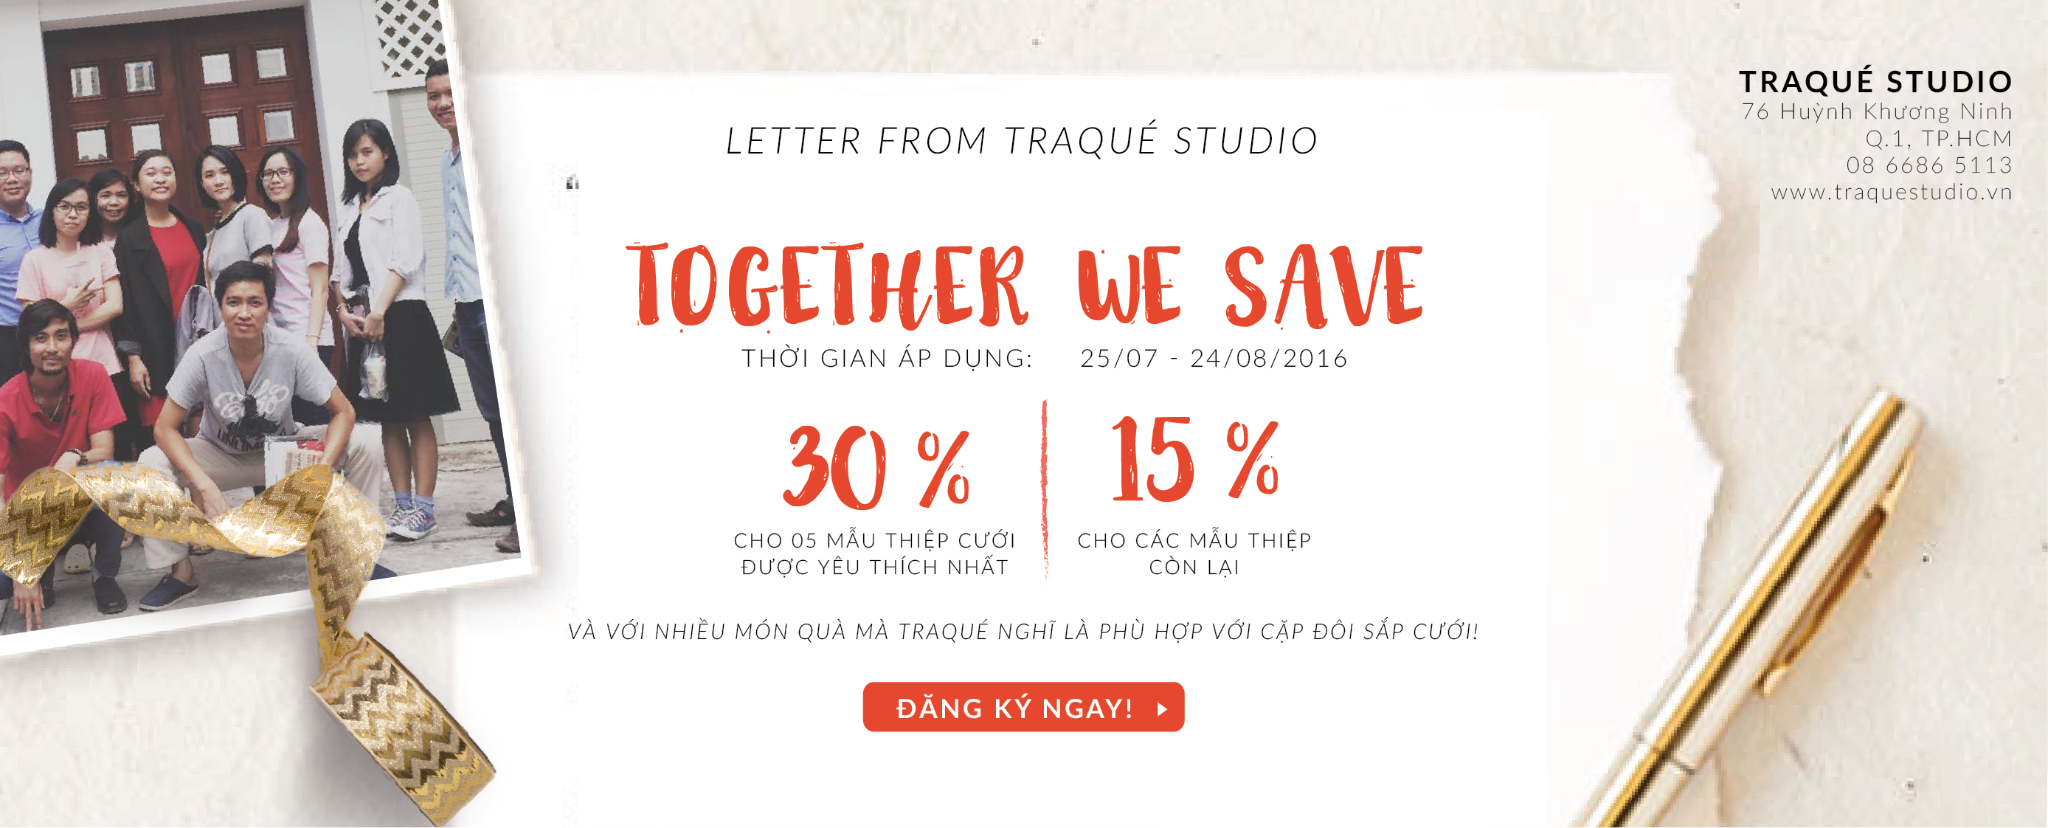 TOGETHER WE SAVE – Up to 30% for wedding paper